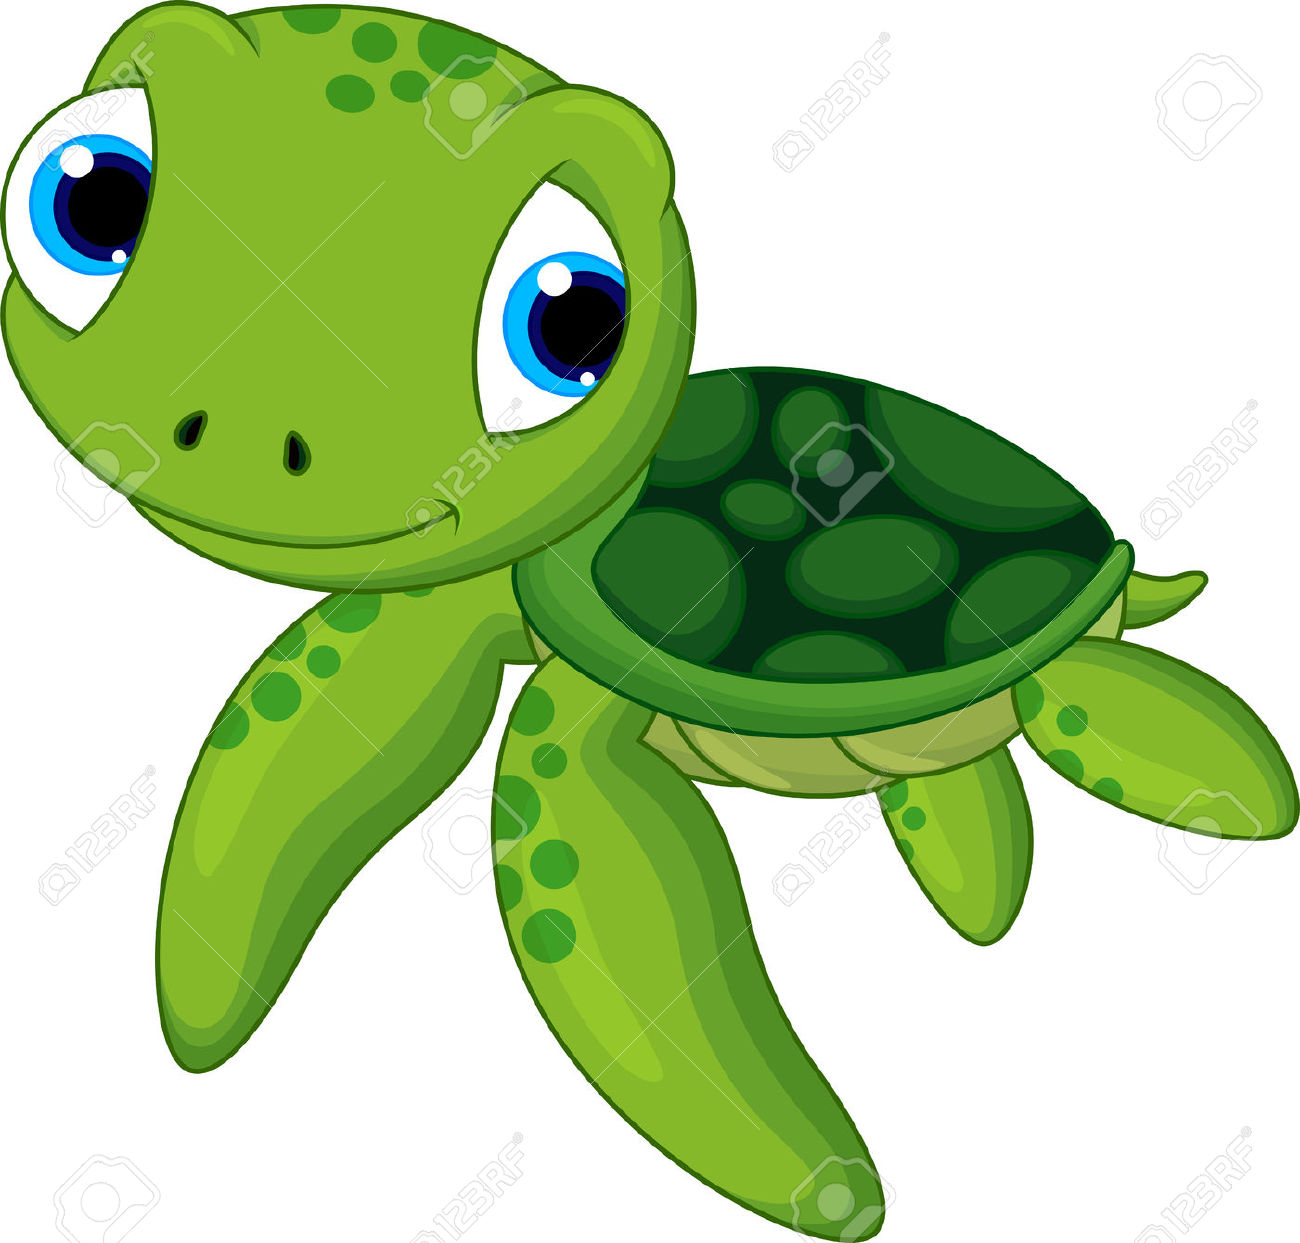 Turtle clipart #15, Download drawings